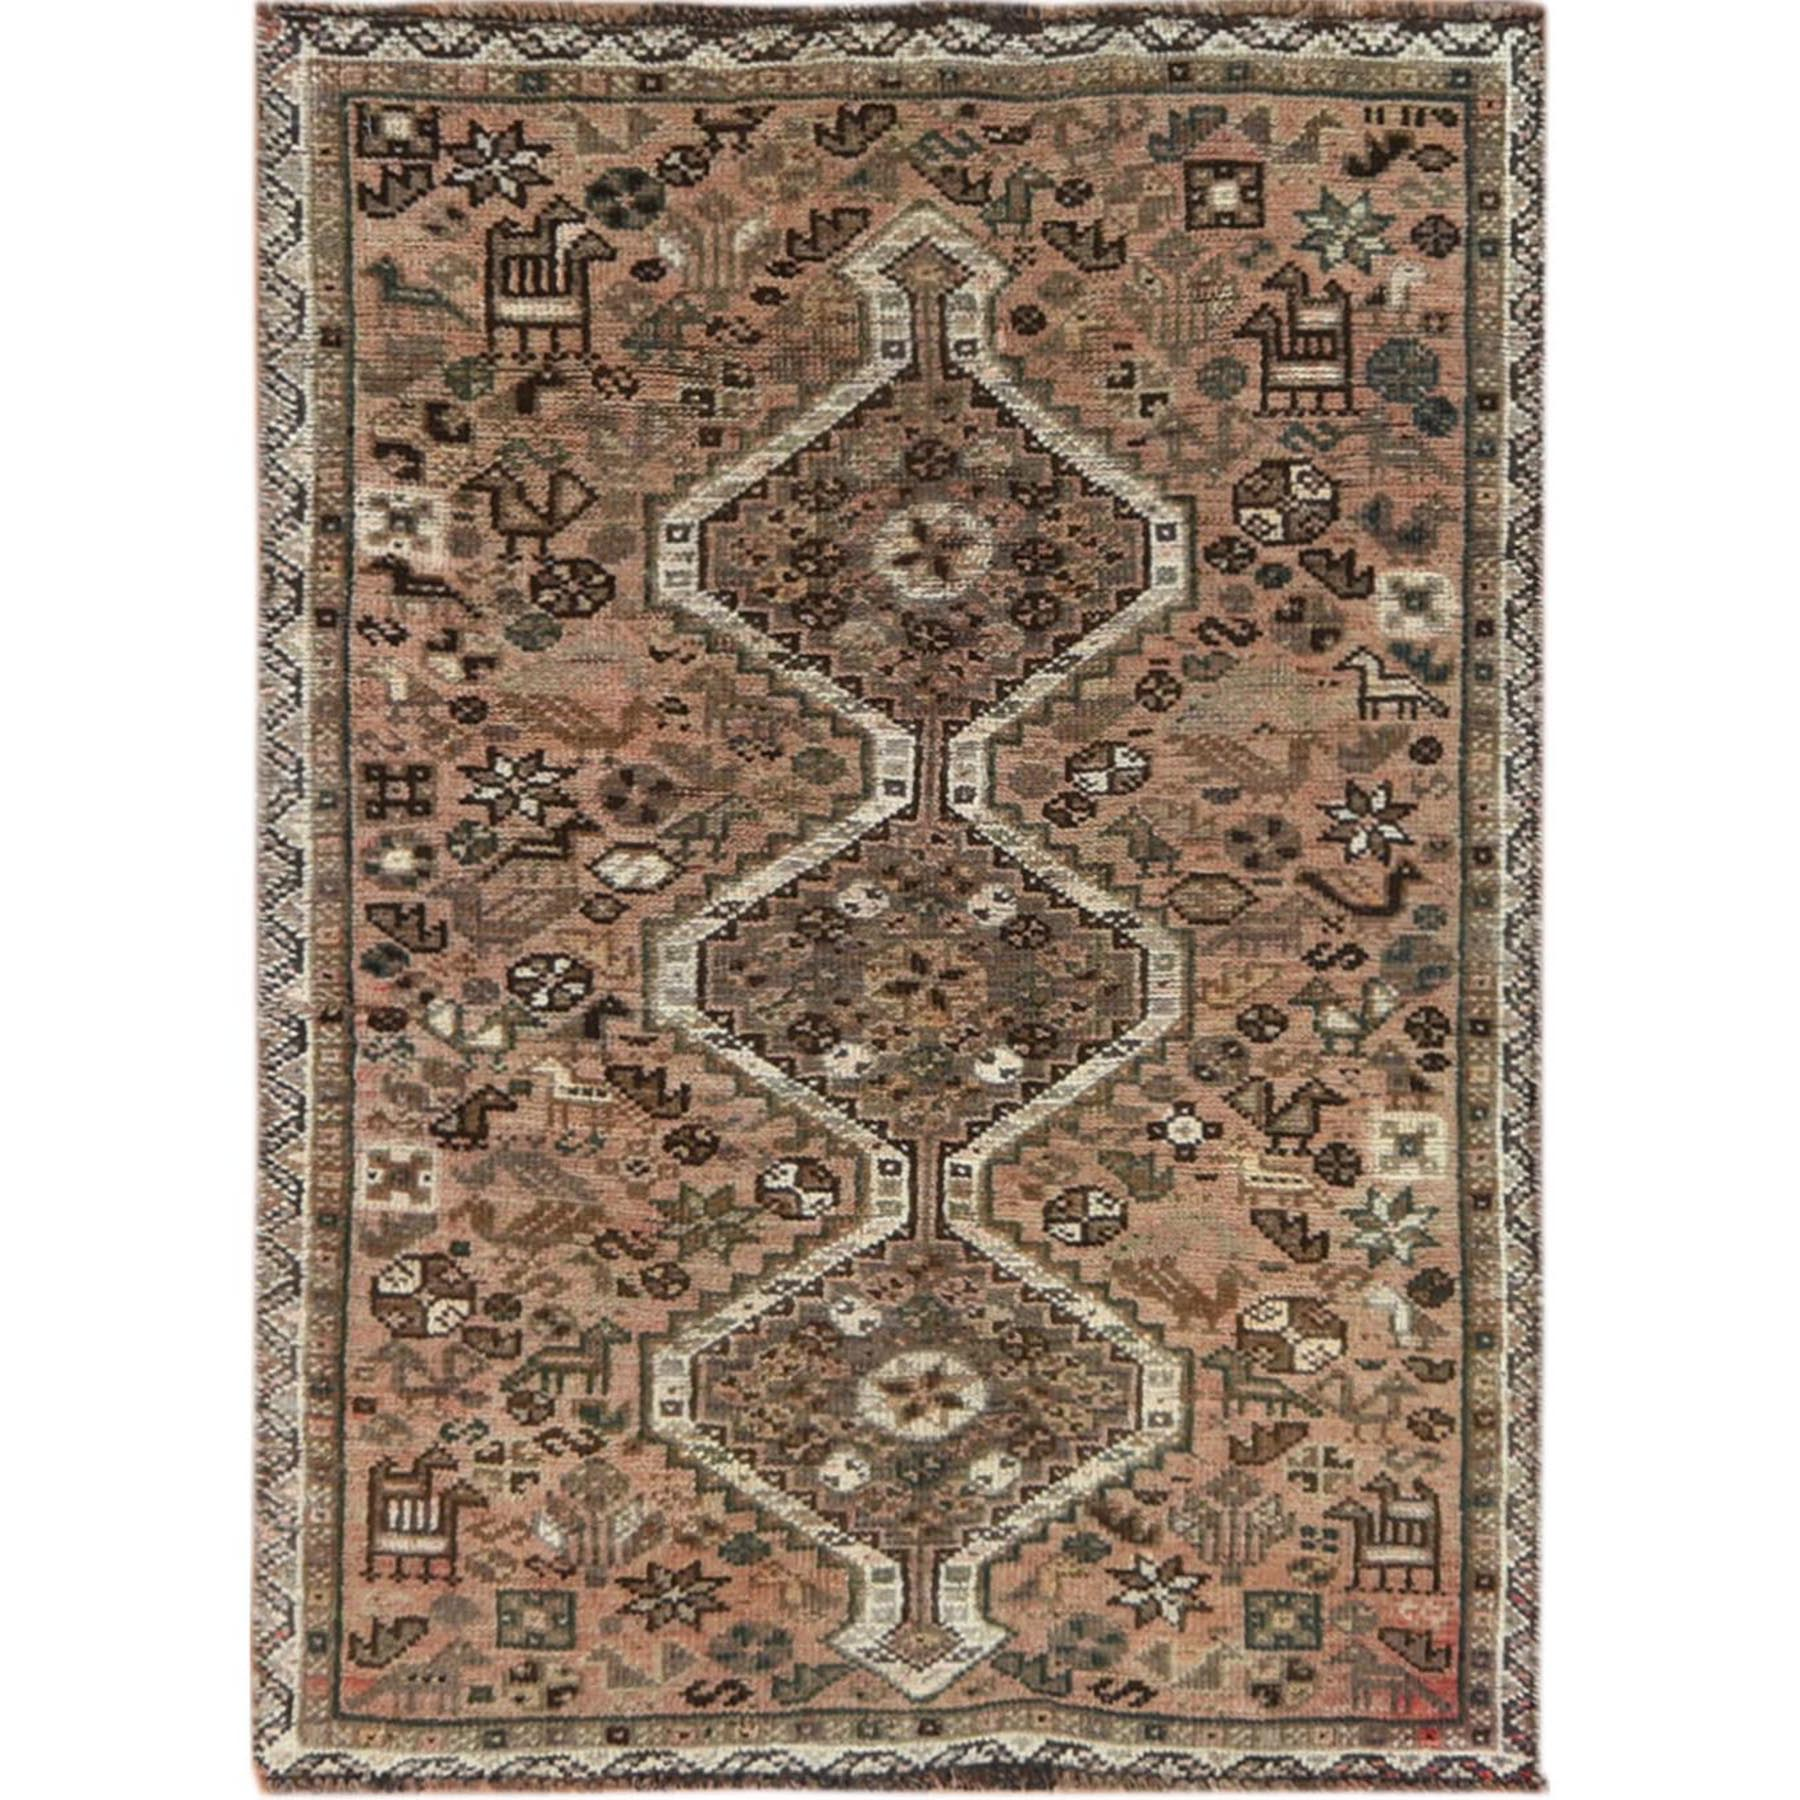 "3'x4'1"" Pure Wool Light Brown Persian Qashqai Vintage Worn Down Bohemian Clean Hand Knotted Oriental Rug"